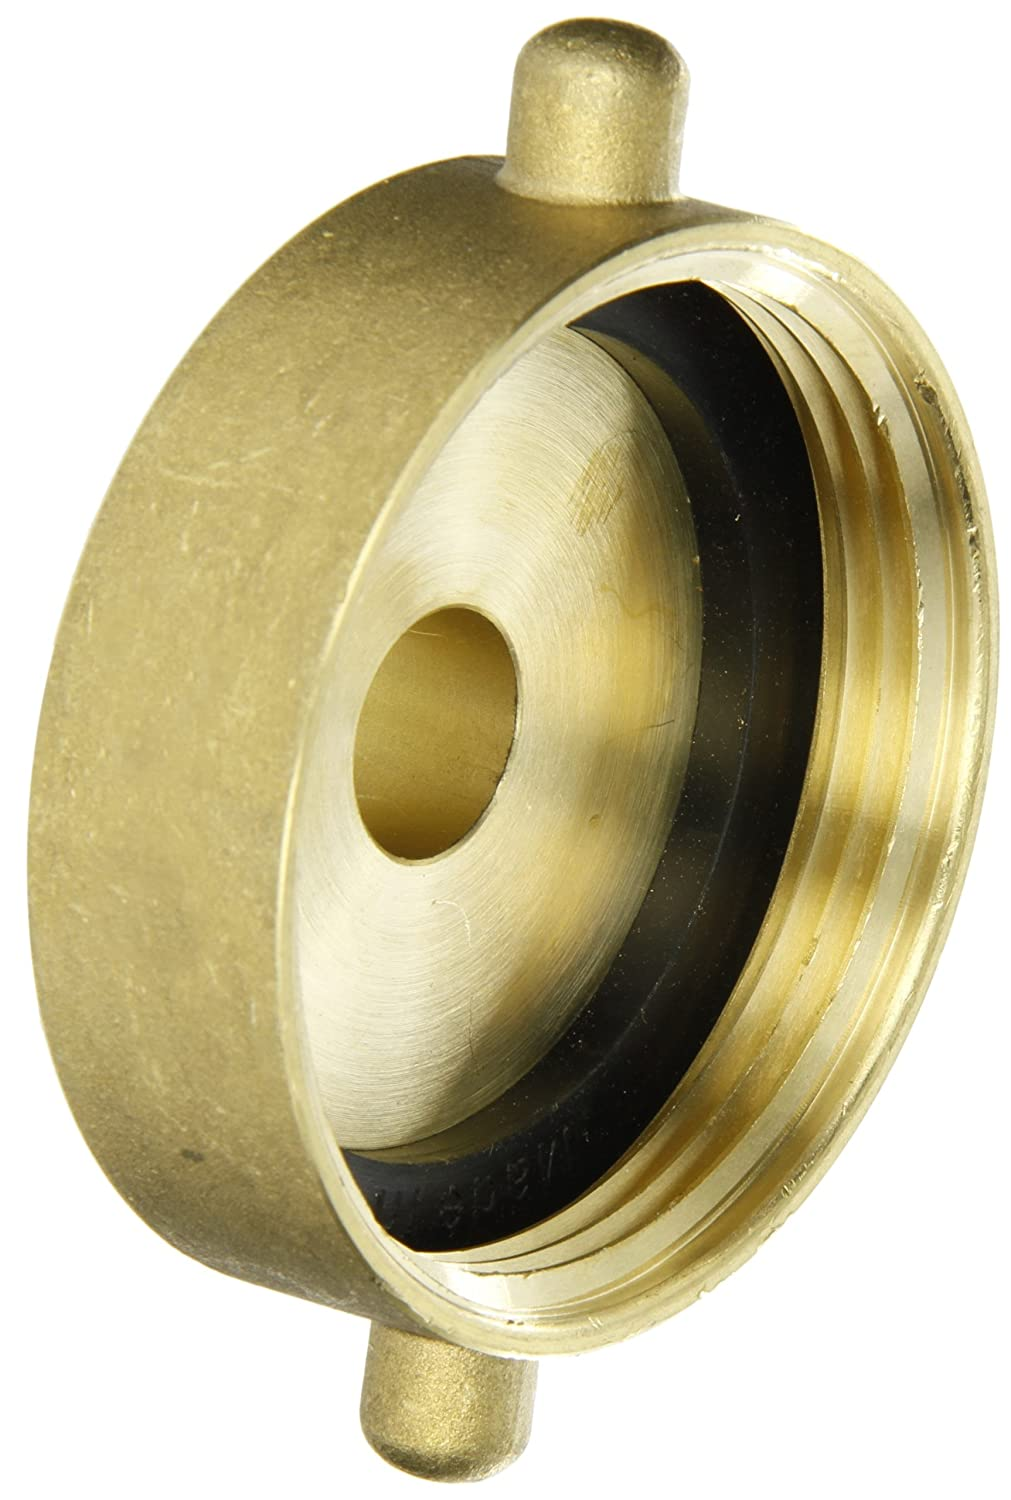 Dixon Valve HA2575T Brass Fire Equipment, Hydrant Adapter with Pin Lug, 2-1/2' NST (NH) Female x 3/4' NPT Male 2-1/2 NST (NH) Female x 3/4 NPT Male Dixon Valve & Coupling